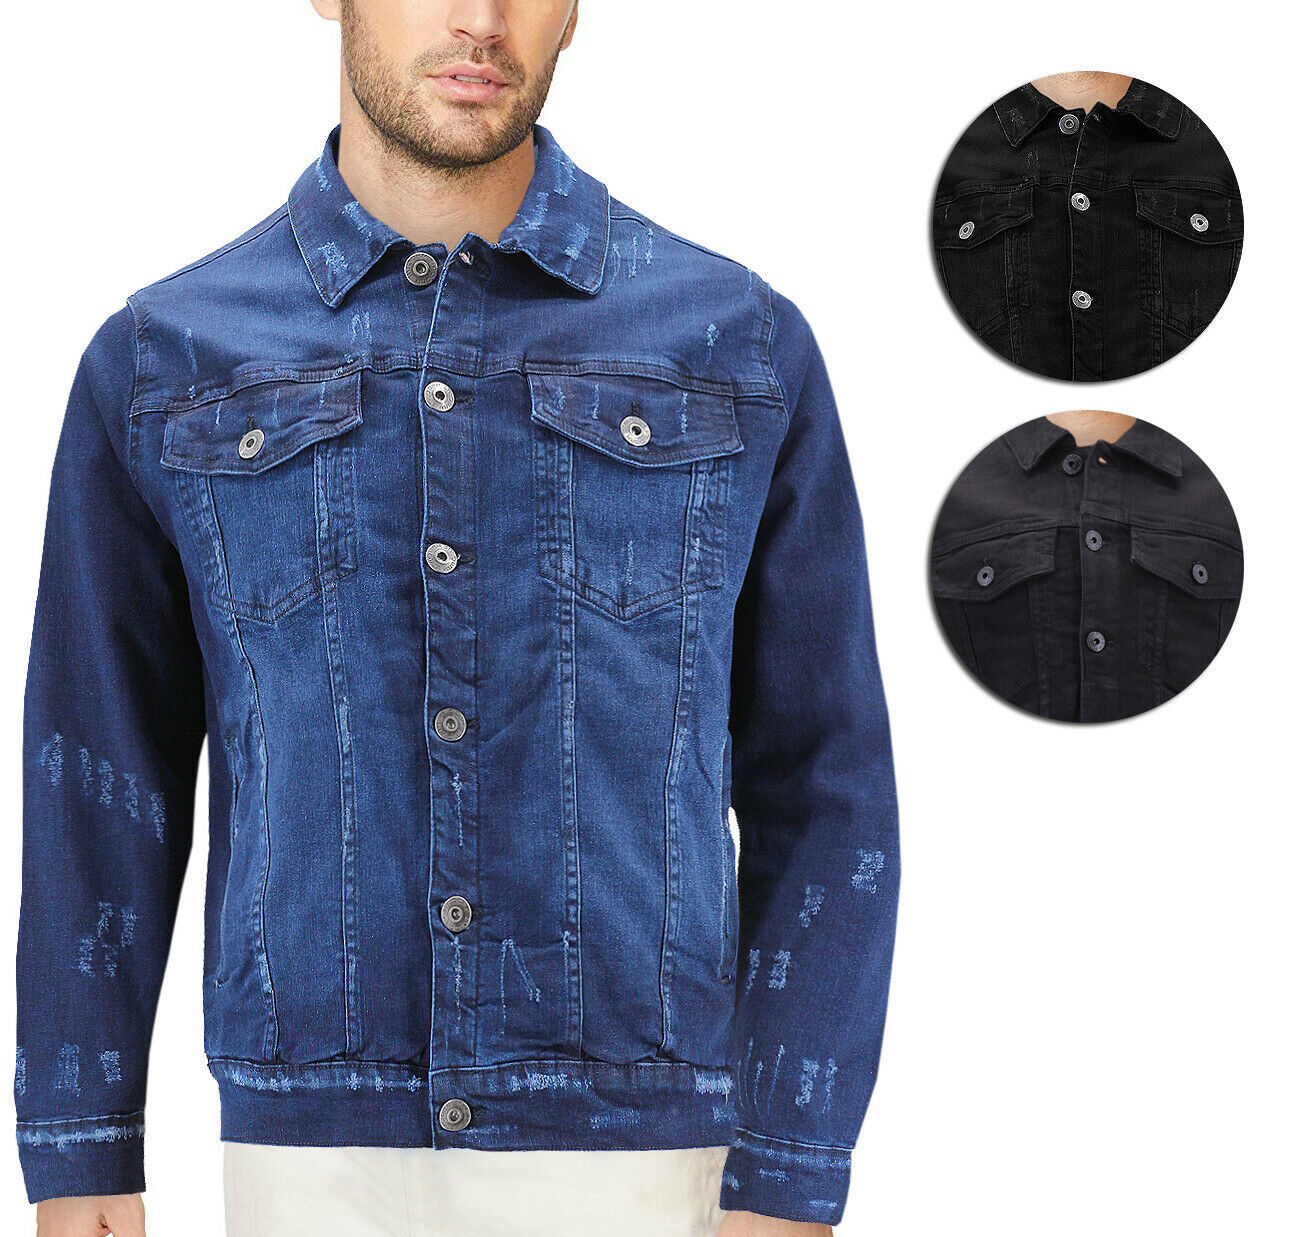 Men's Classic Distressed Casual Button Up Stretch Jean Trucker Denim Jacket